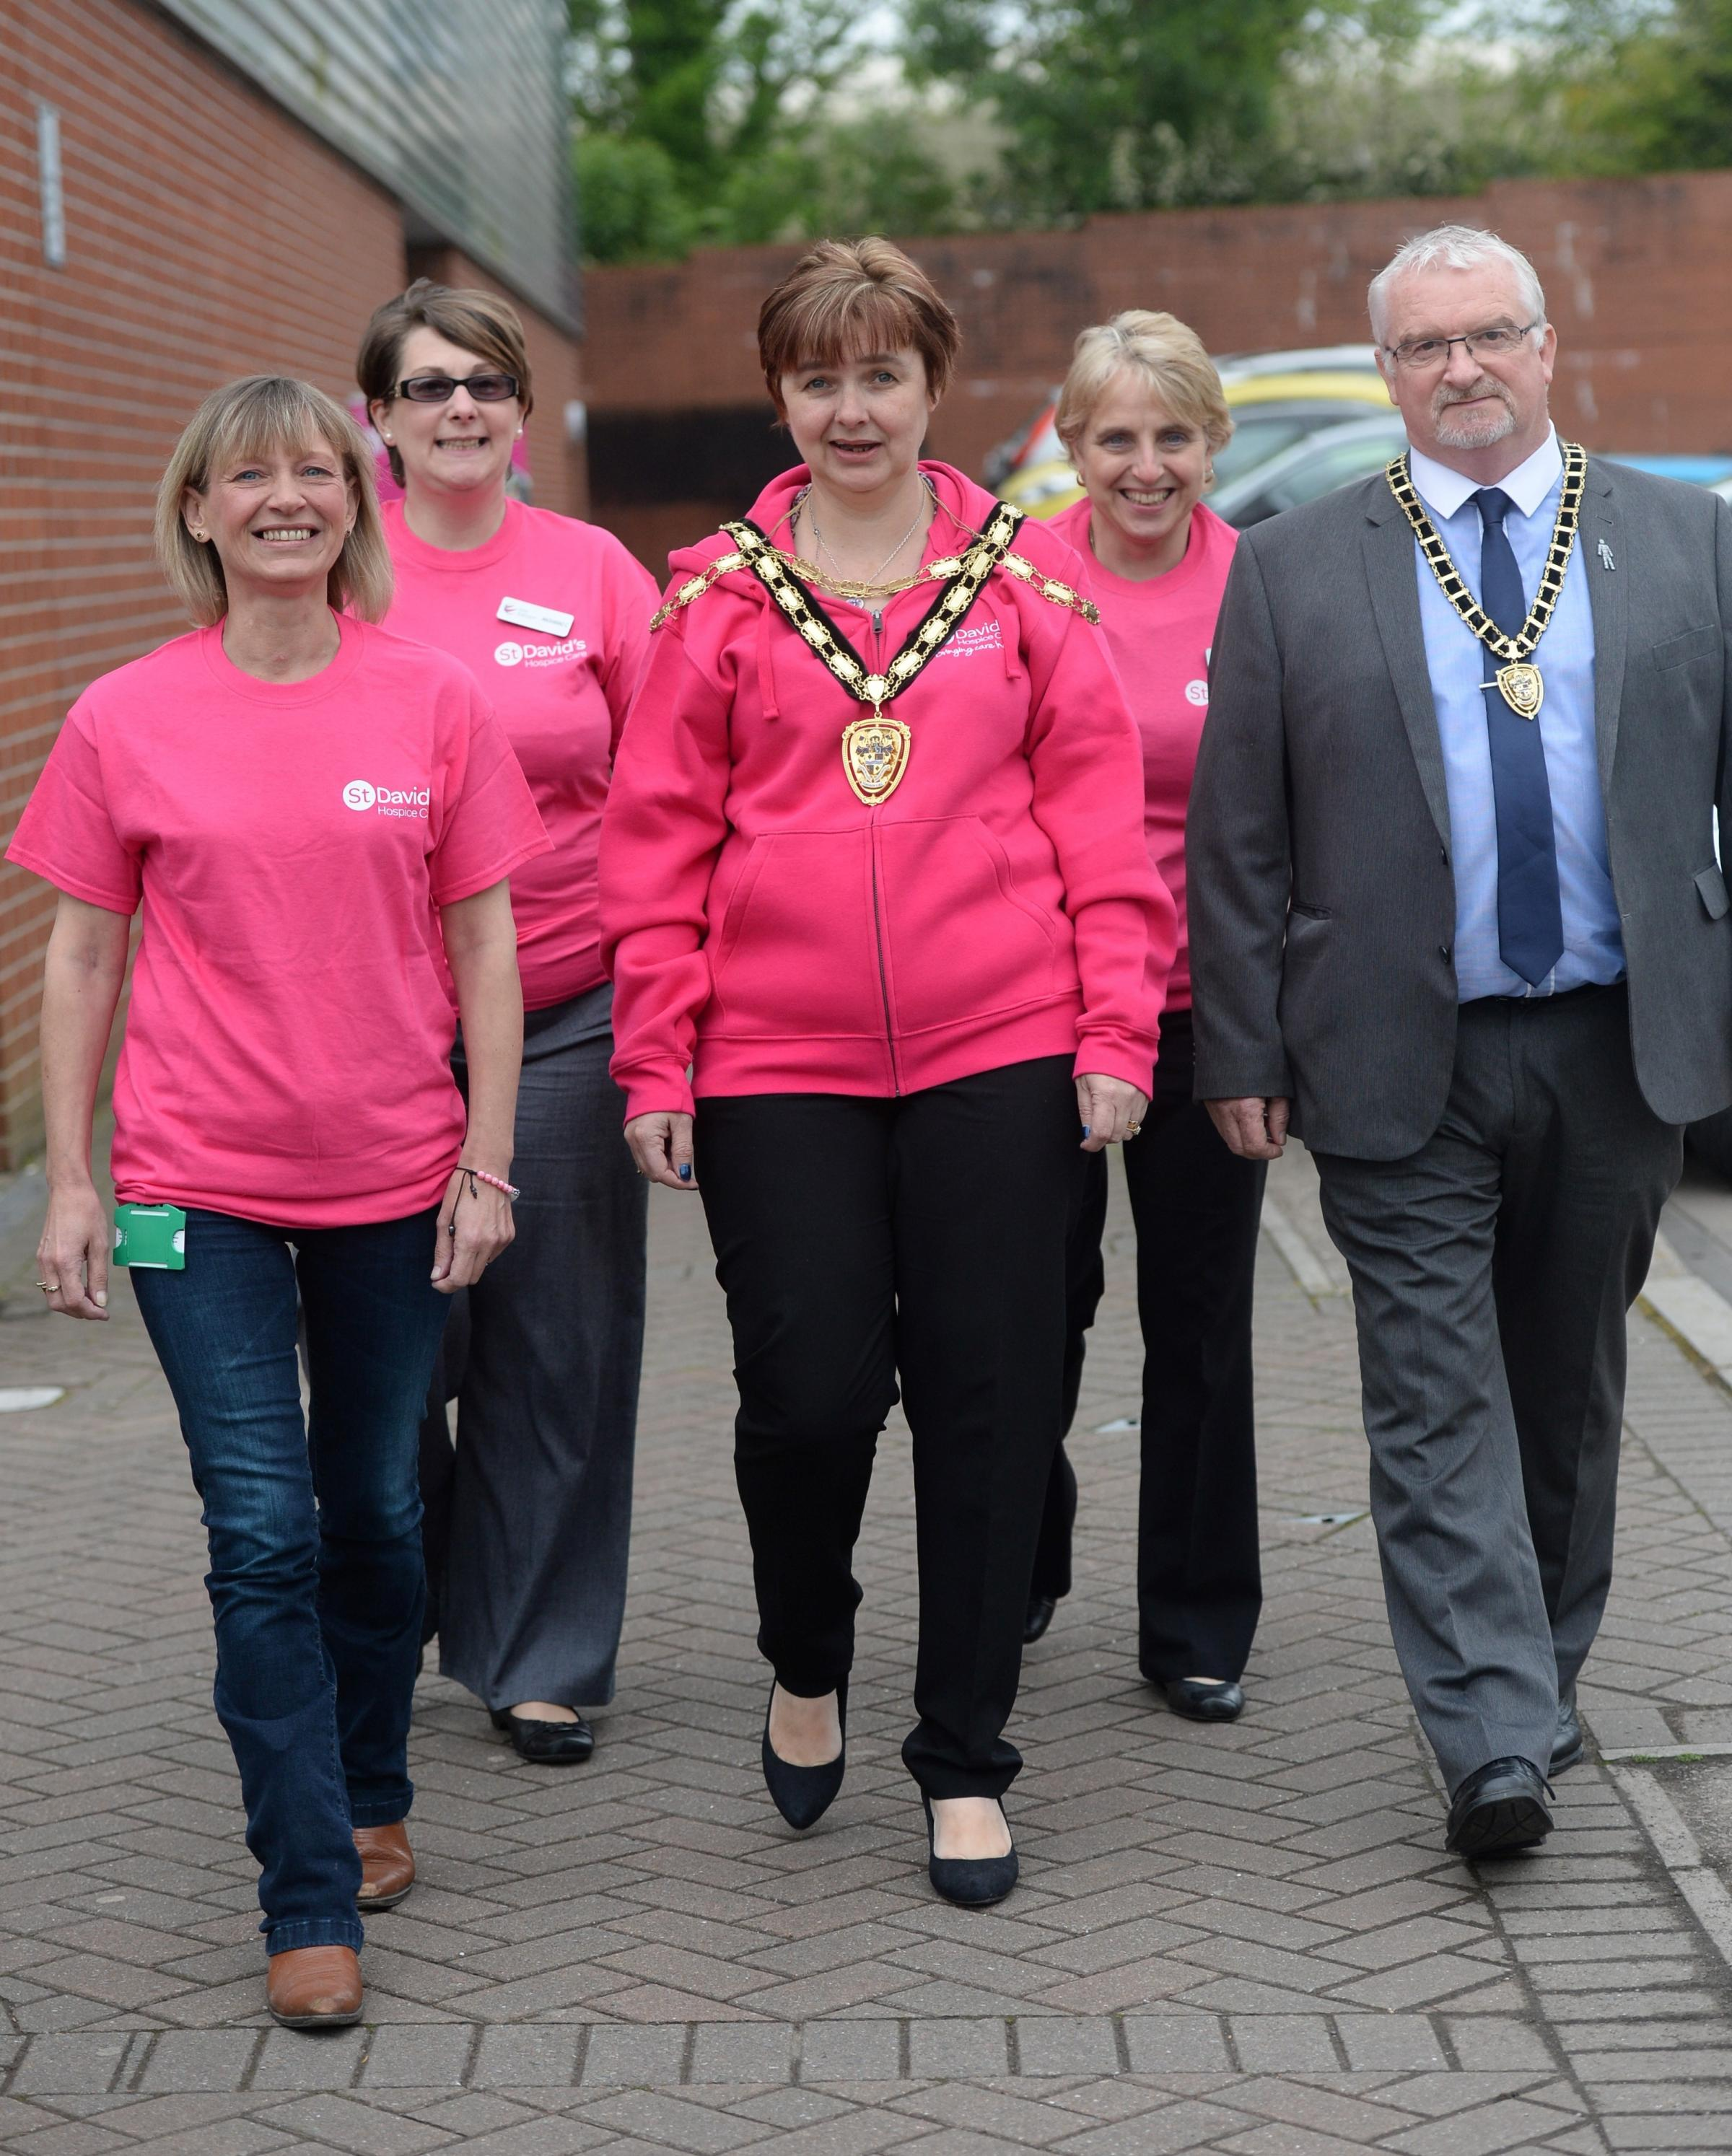 St Davids Midnight walk through Cwmbran. Pictured are (left to right) Rachel Wills from Western Power Distribution, Angharad Collins from Torfaen Leisure Trust, Cllr Mandy Owen Mayor of Torfaen, Mandy Price from Torfaen Leisure Trust and Richard Owen, con